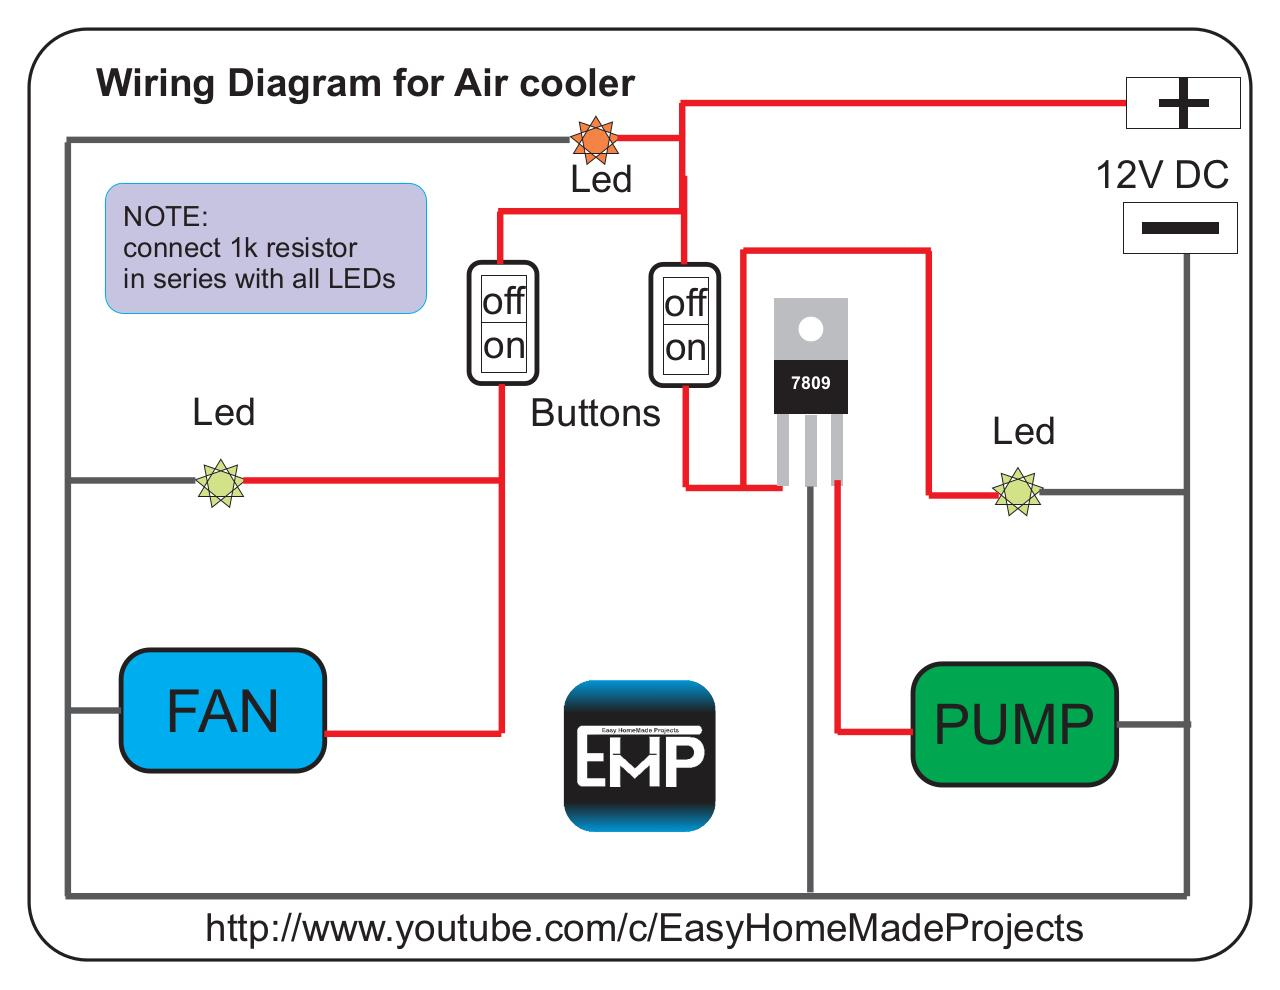 hight resolution of wiring cdr by usman ahmad wiring diagram for mini air cooler pdf rh pdf archive com cooler parts evaporative cooler switch diagram